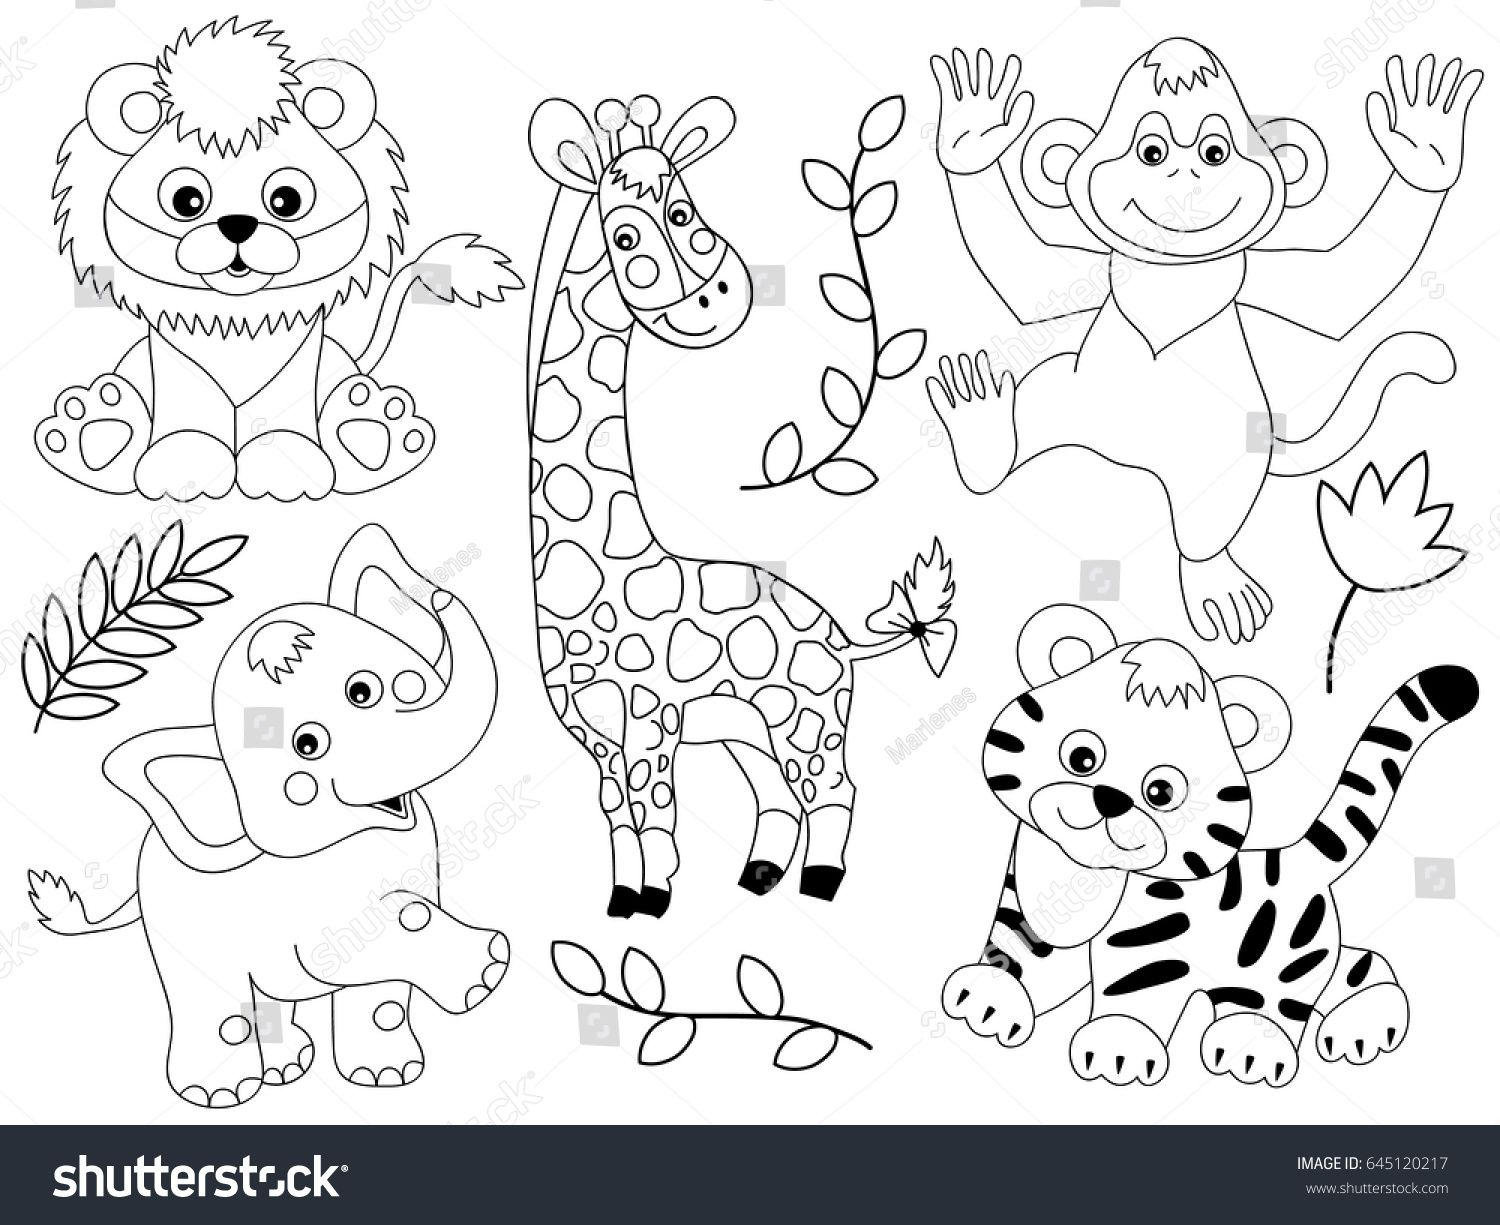 33++ Baby animal clipart black and white info